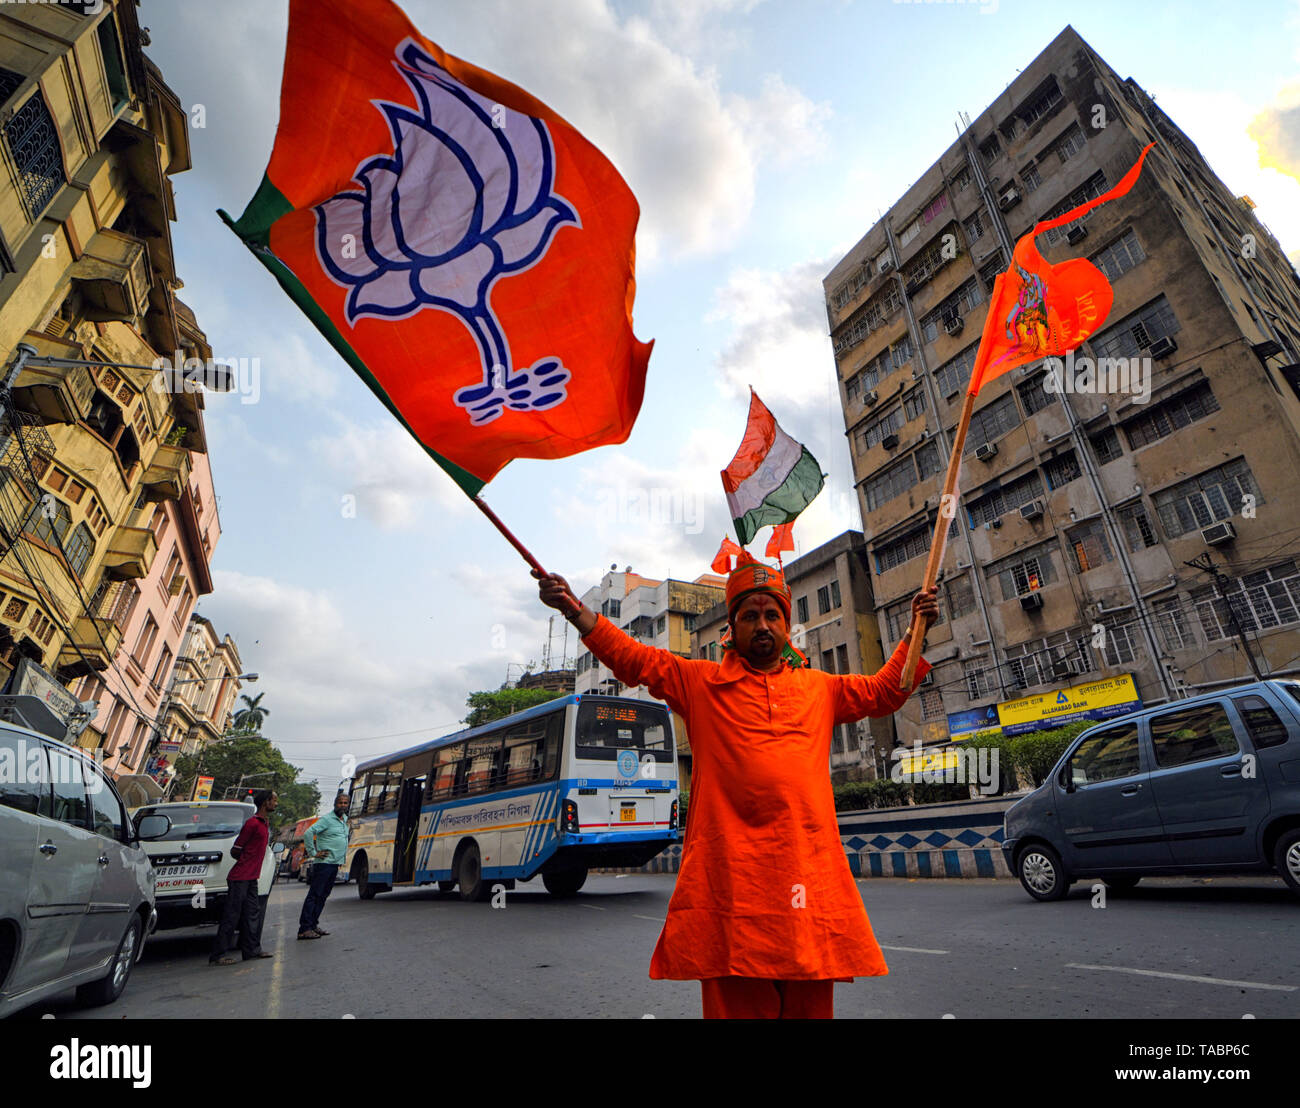 A supporter of Bharatiya Janata Party (BJP) seen weaving the BJP Flags in front of the Party Head quarter at Kolkata after making massive Win in West Bengal & India election. Bharatiya Janata Party (BJP) wins election in Kolkata, India. - Stock Image